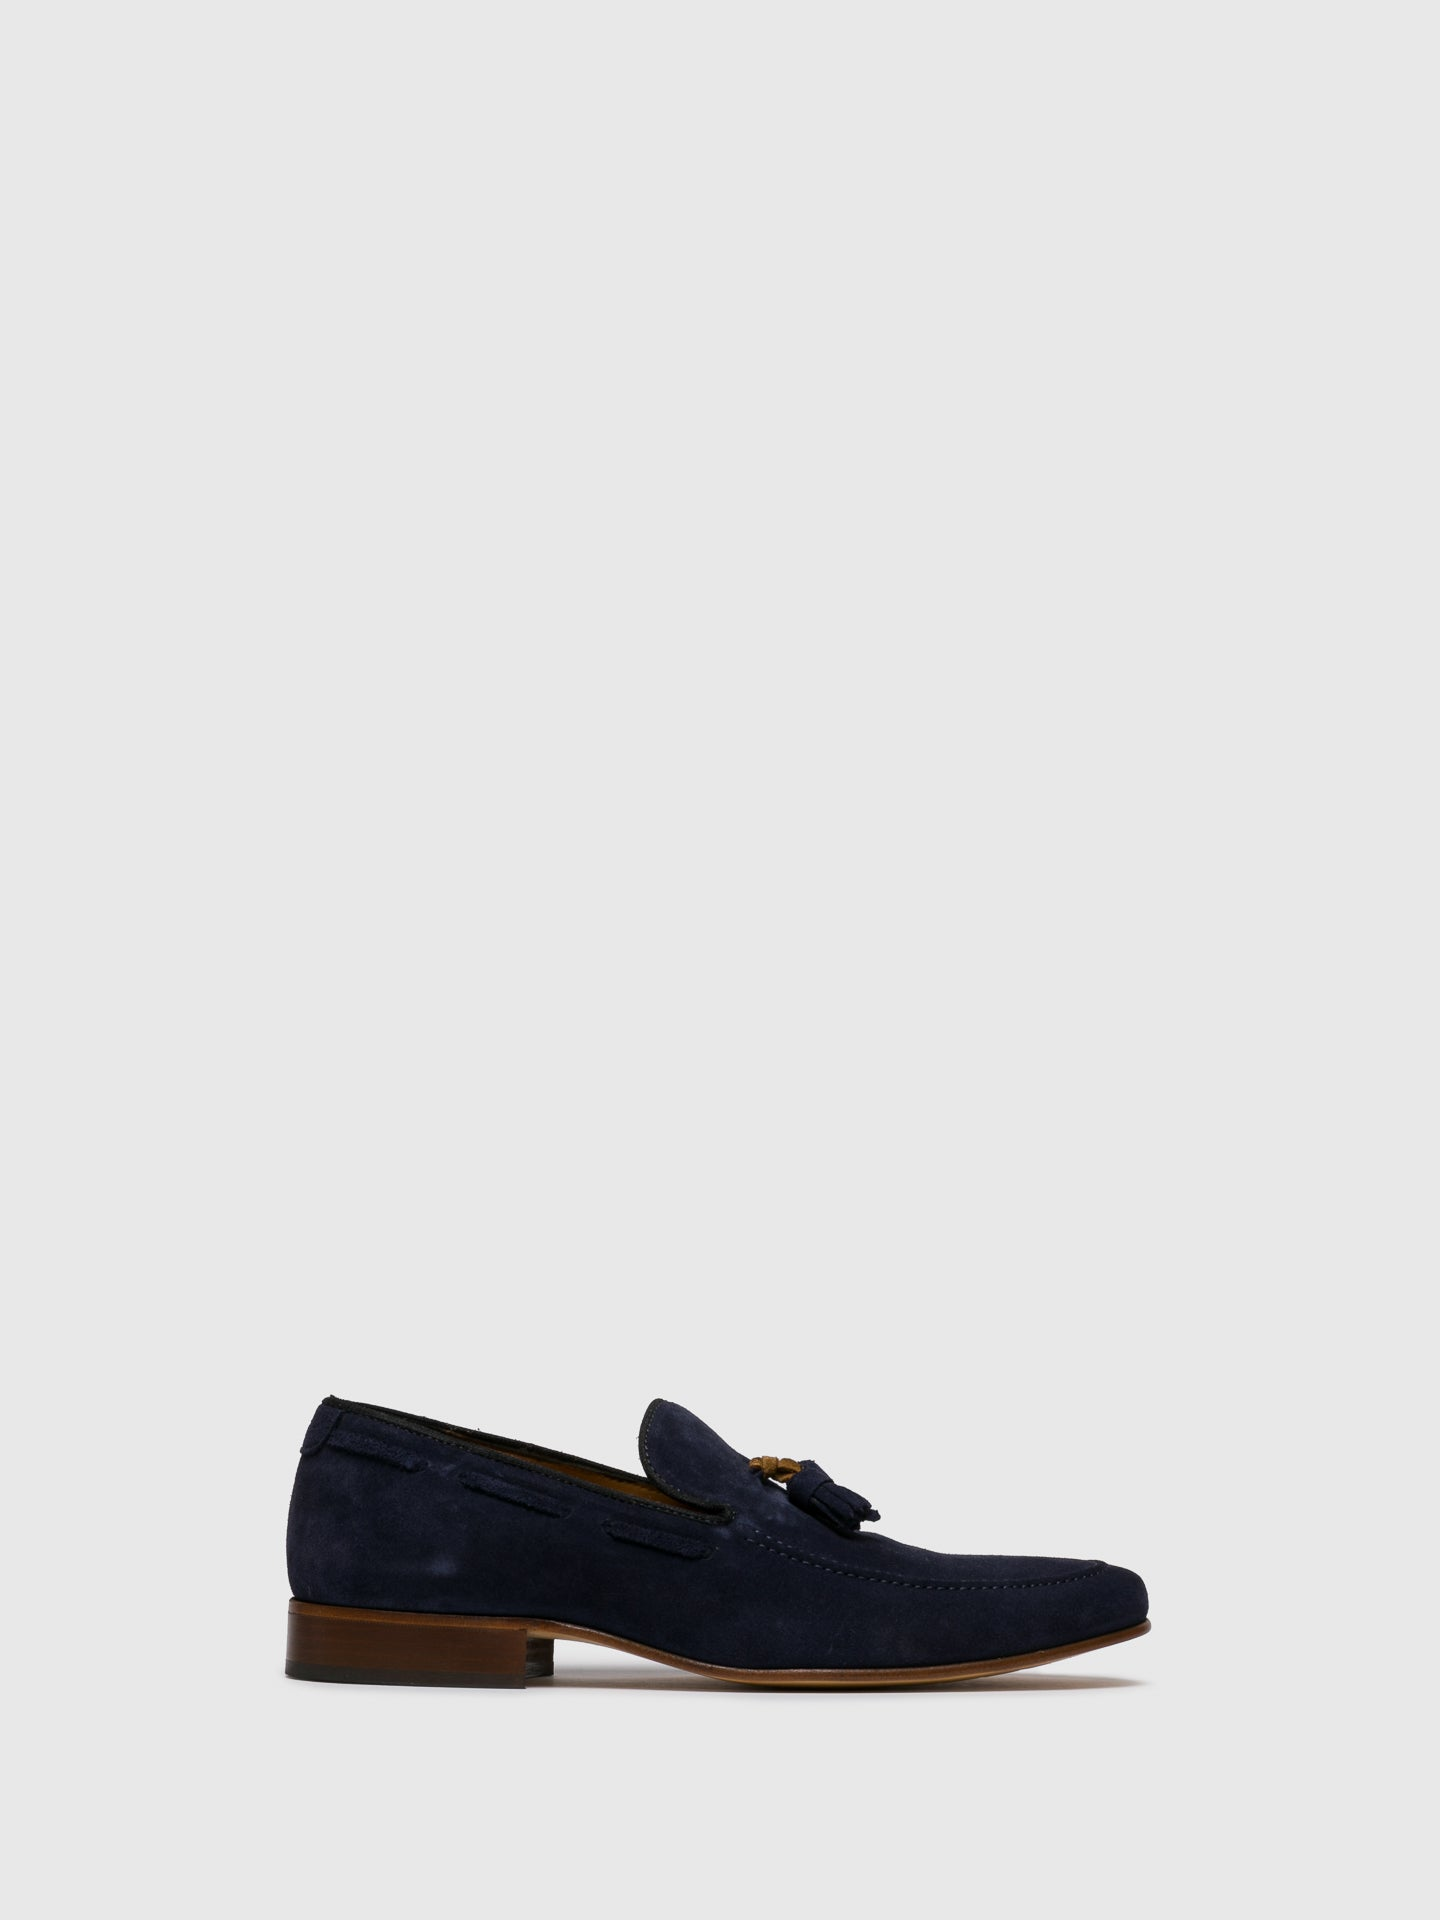 PARODI MILANO Navy Loafers Shoes